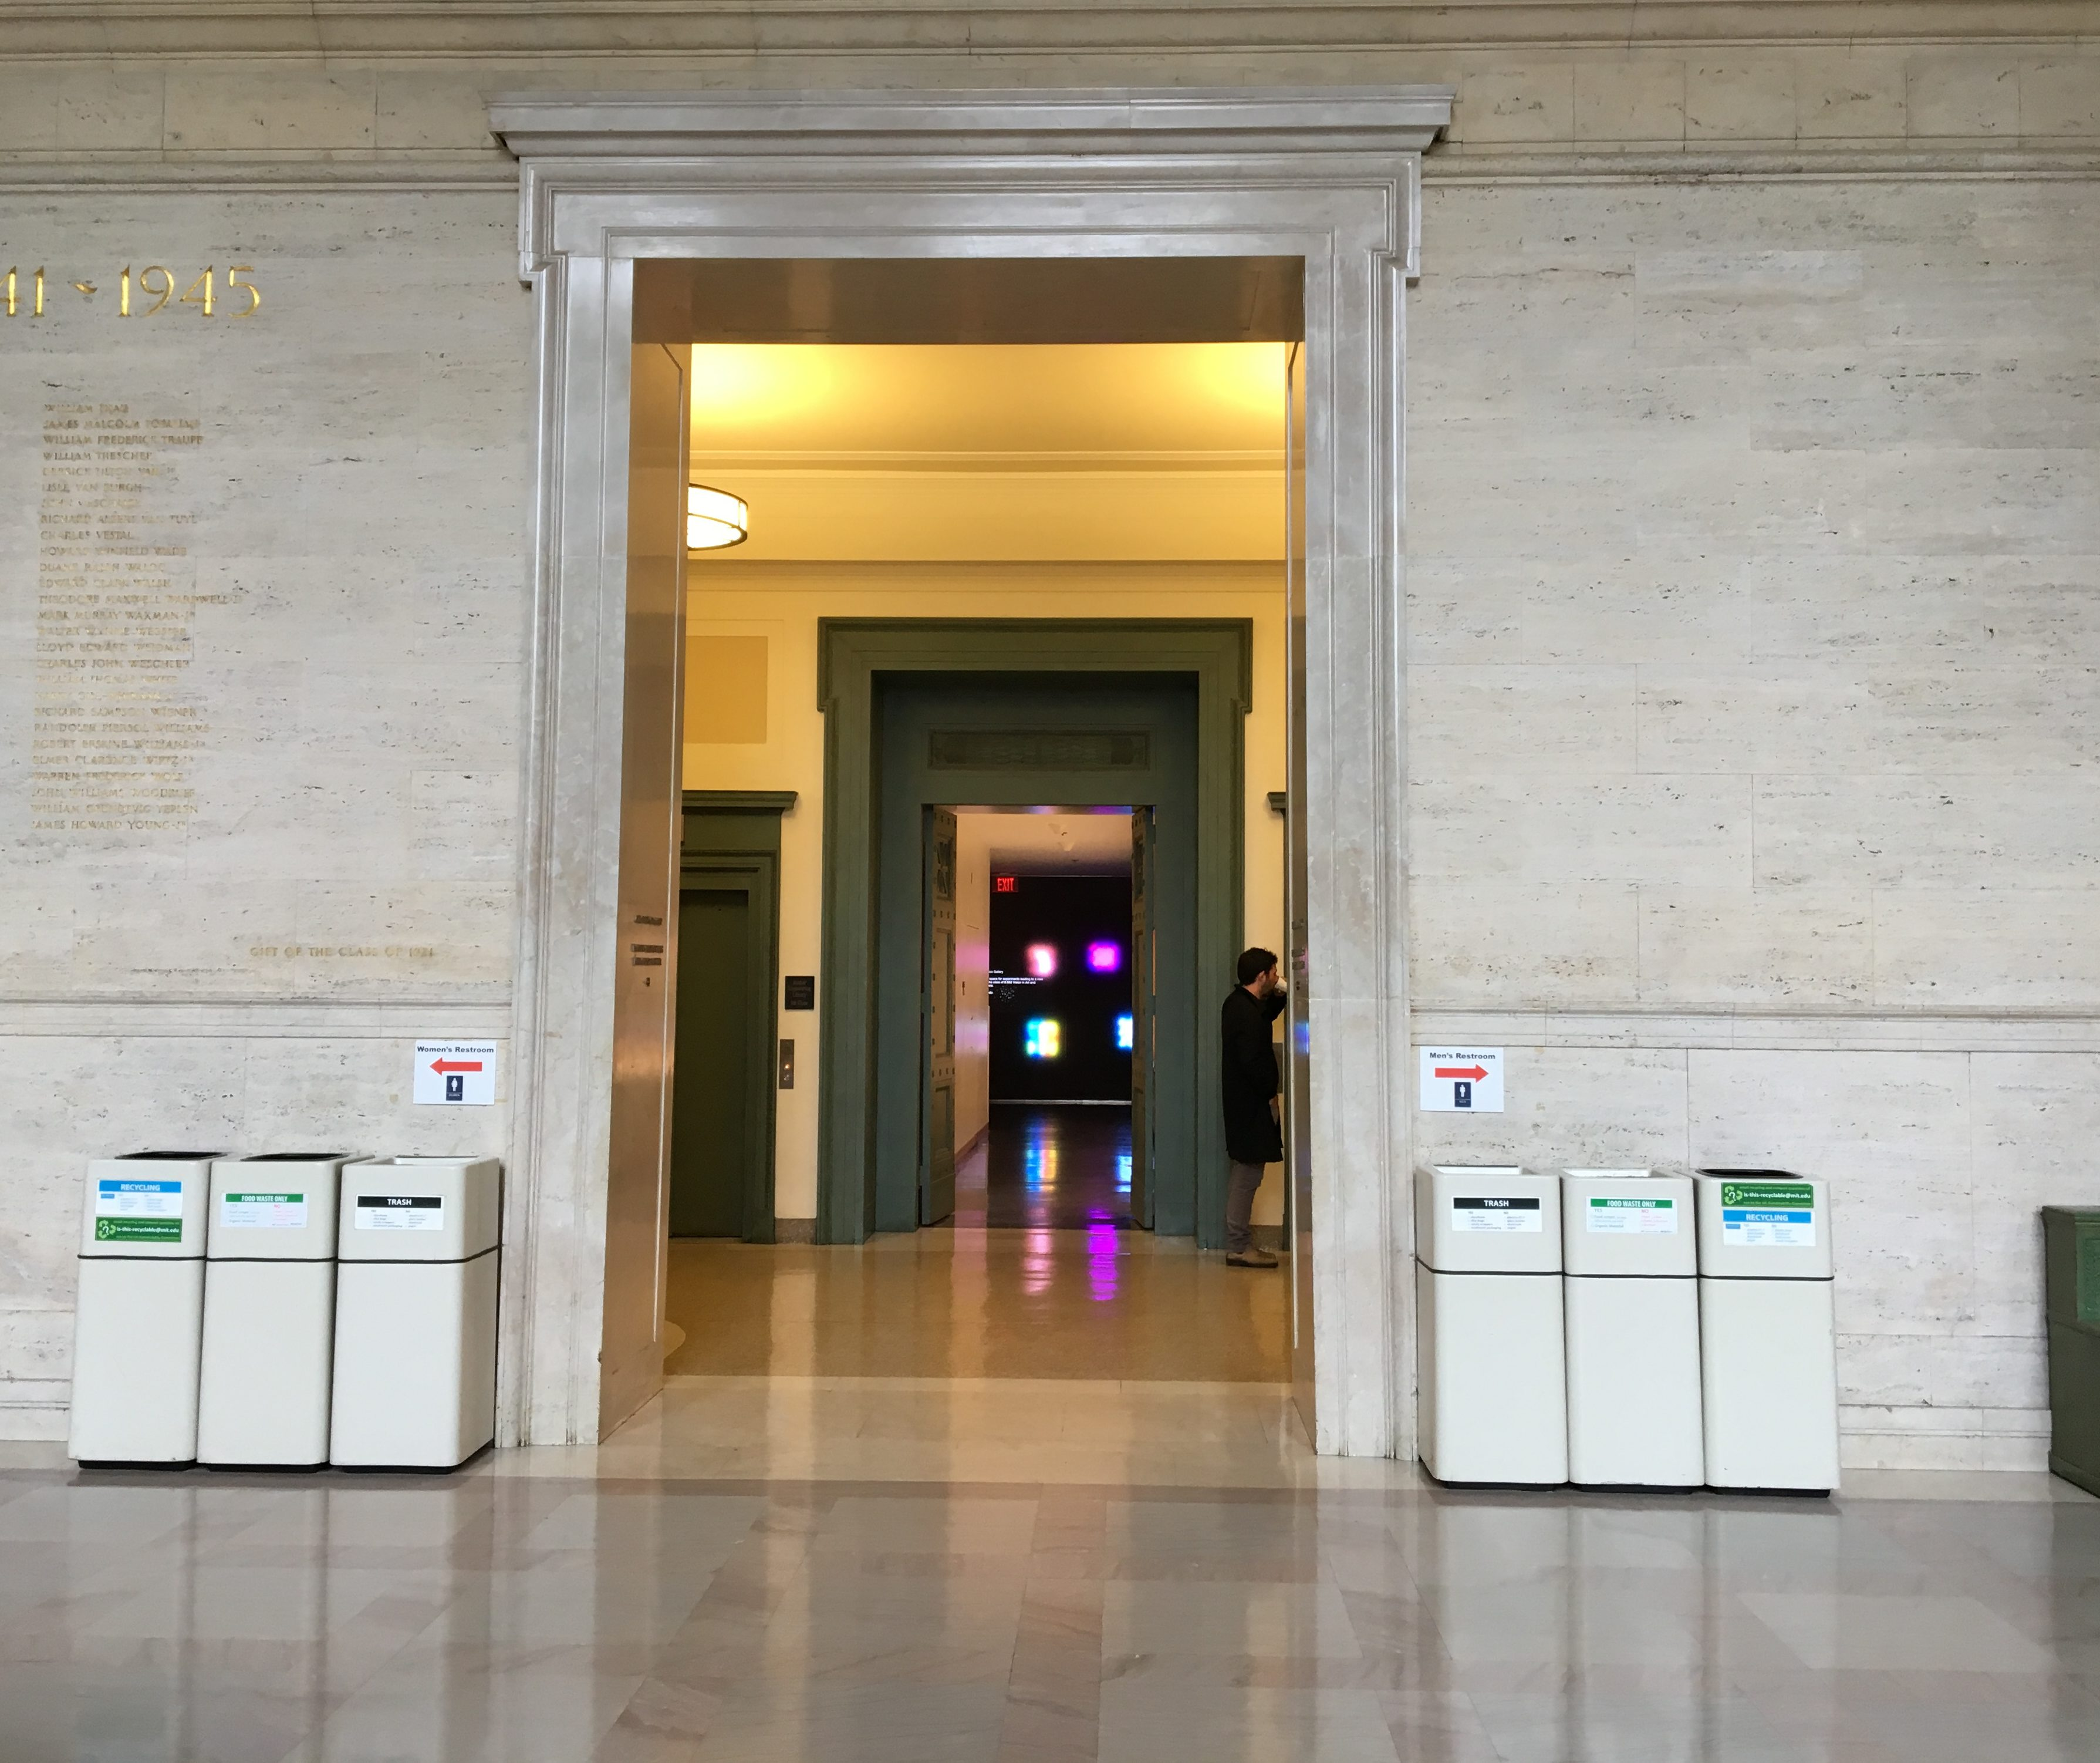 A marble wall with an enormous doorway in the middle of it. Through the doorway, another room can be seen, with a hint of a green elevator door and another green doorway.